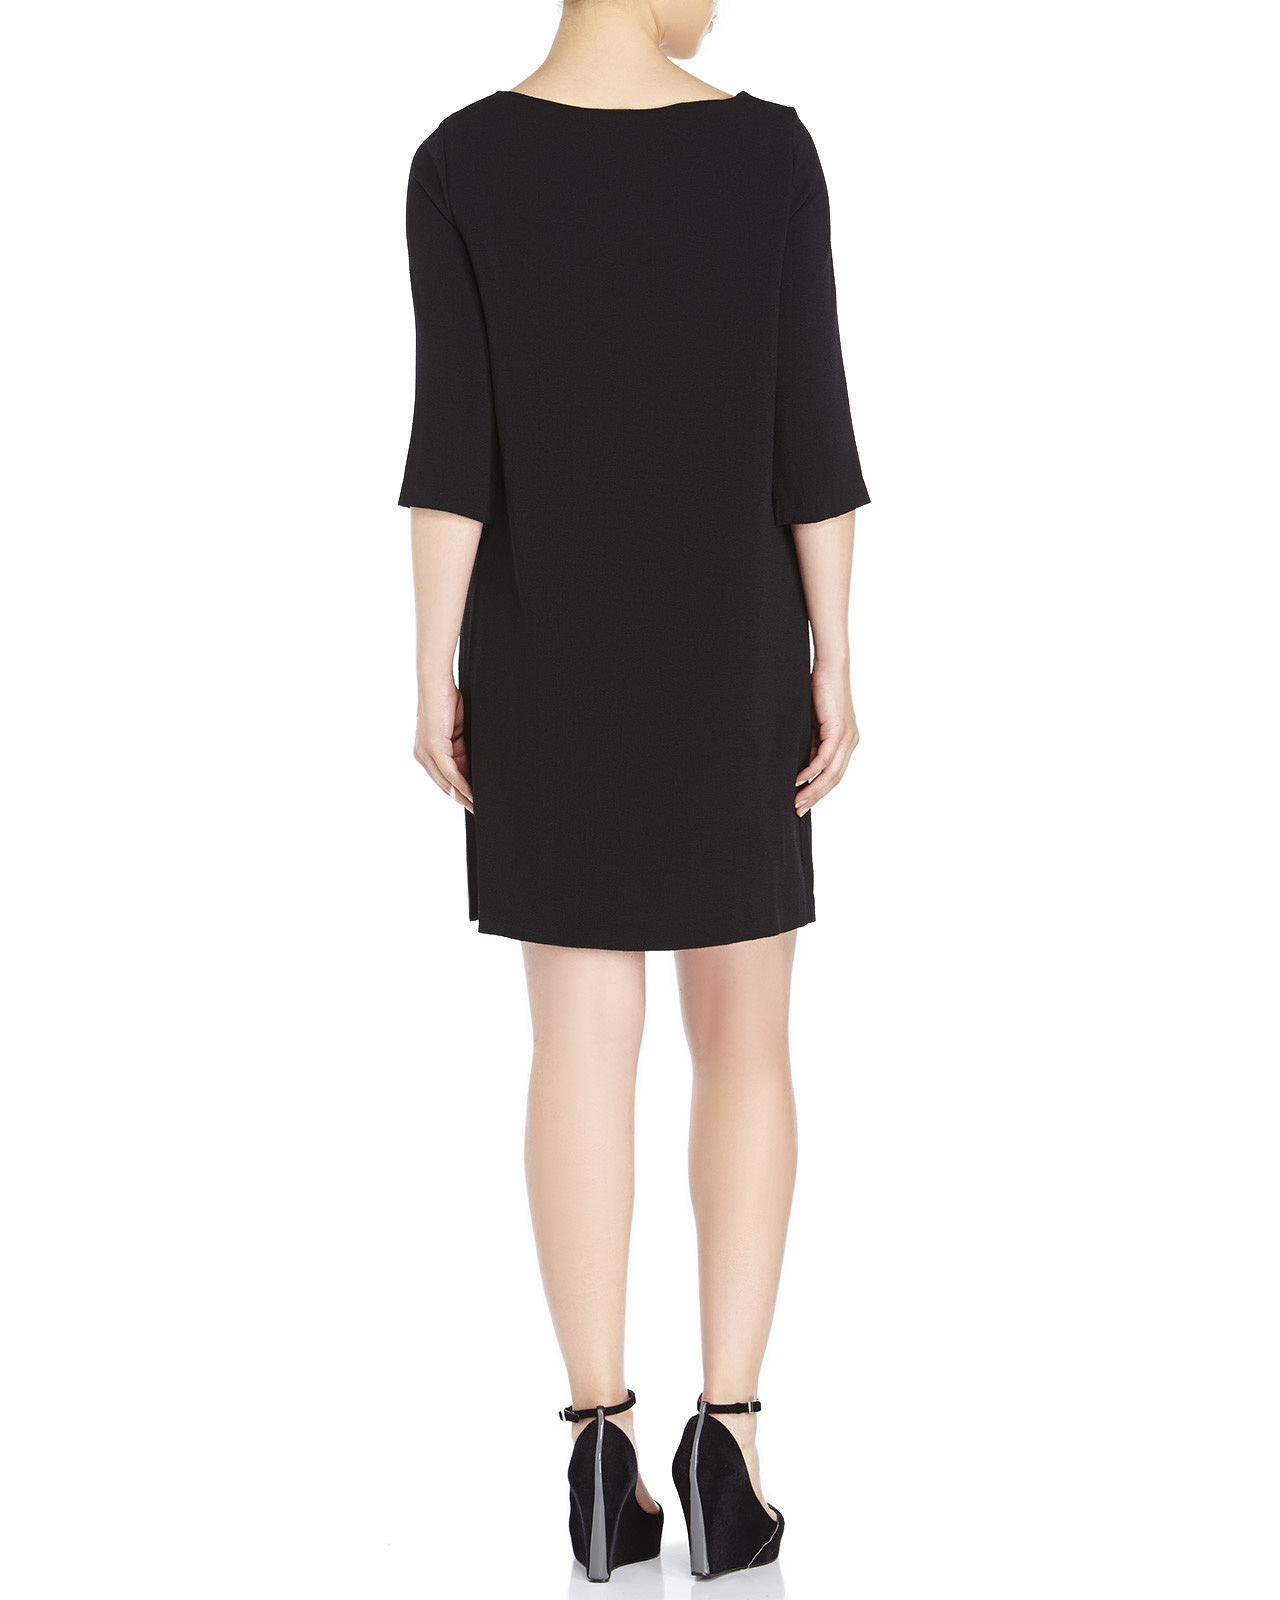 Stitching along the sides subtly defines the body of this effortless shift dress, while an inverted pleat down the center accentuates its elegant drape. Relaxed fit. Intended to hit at the knee.